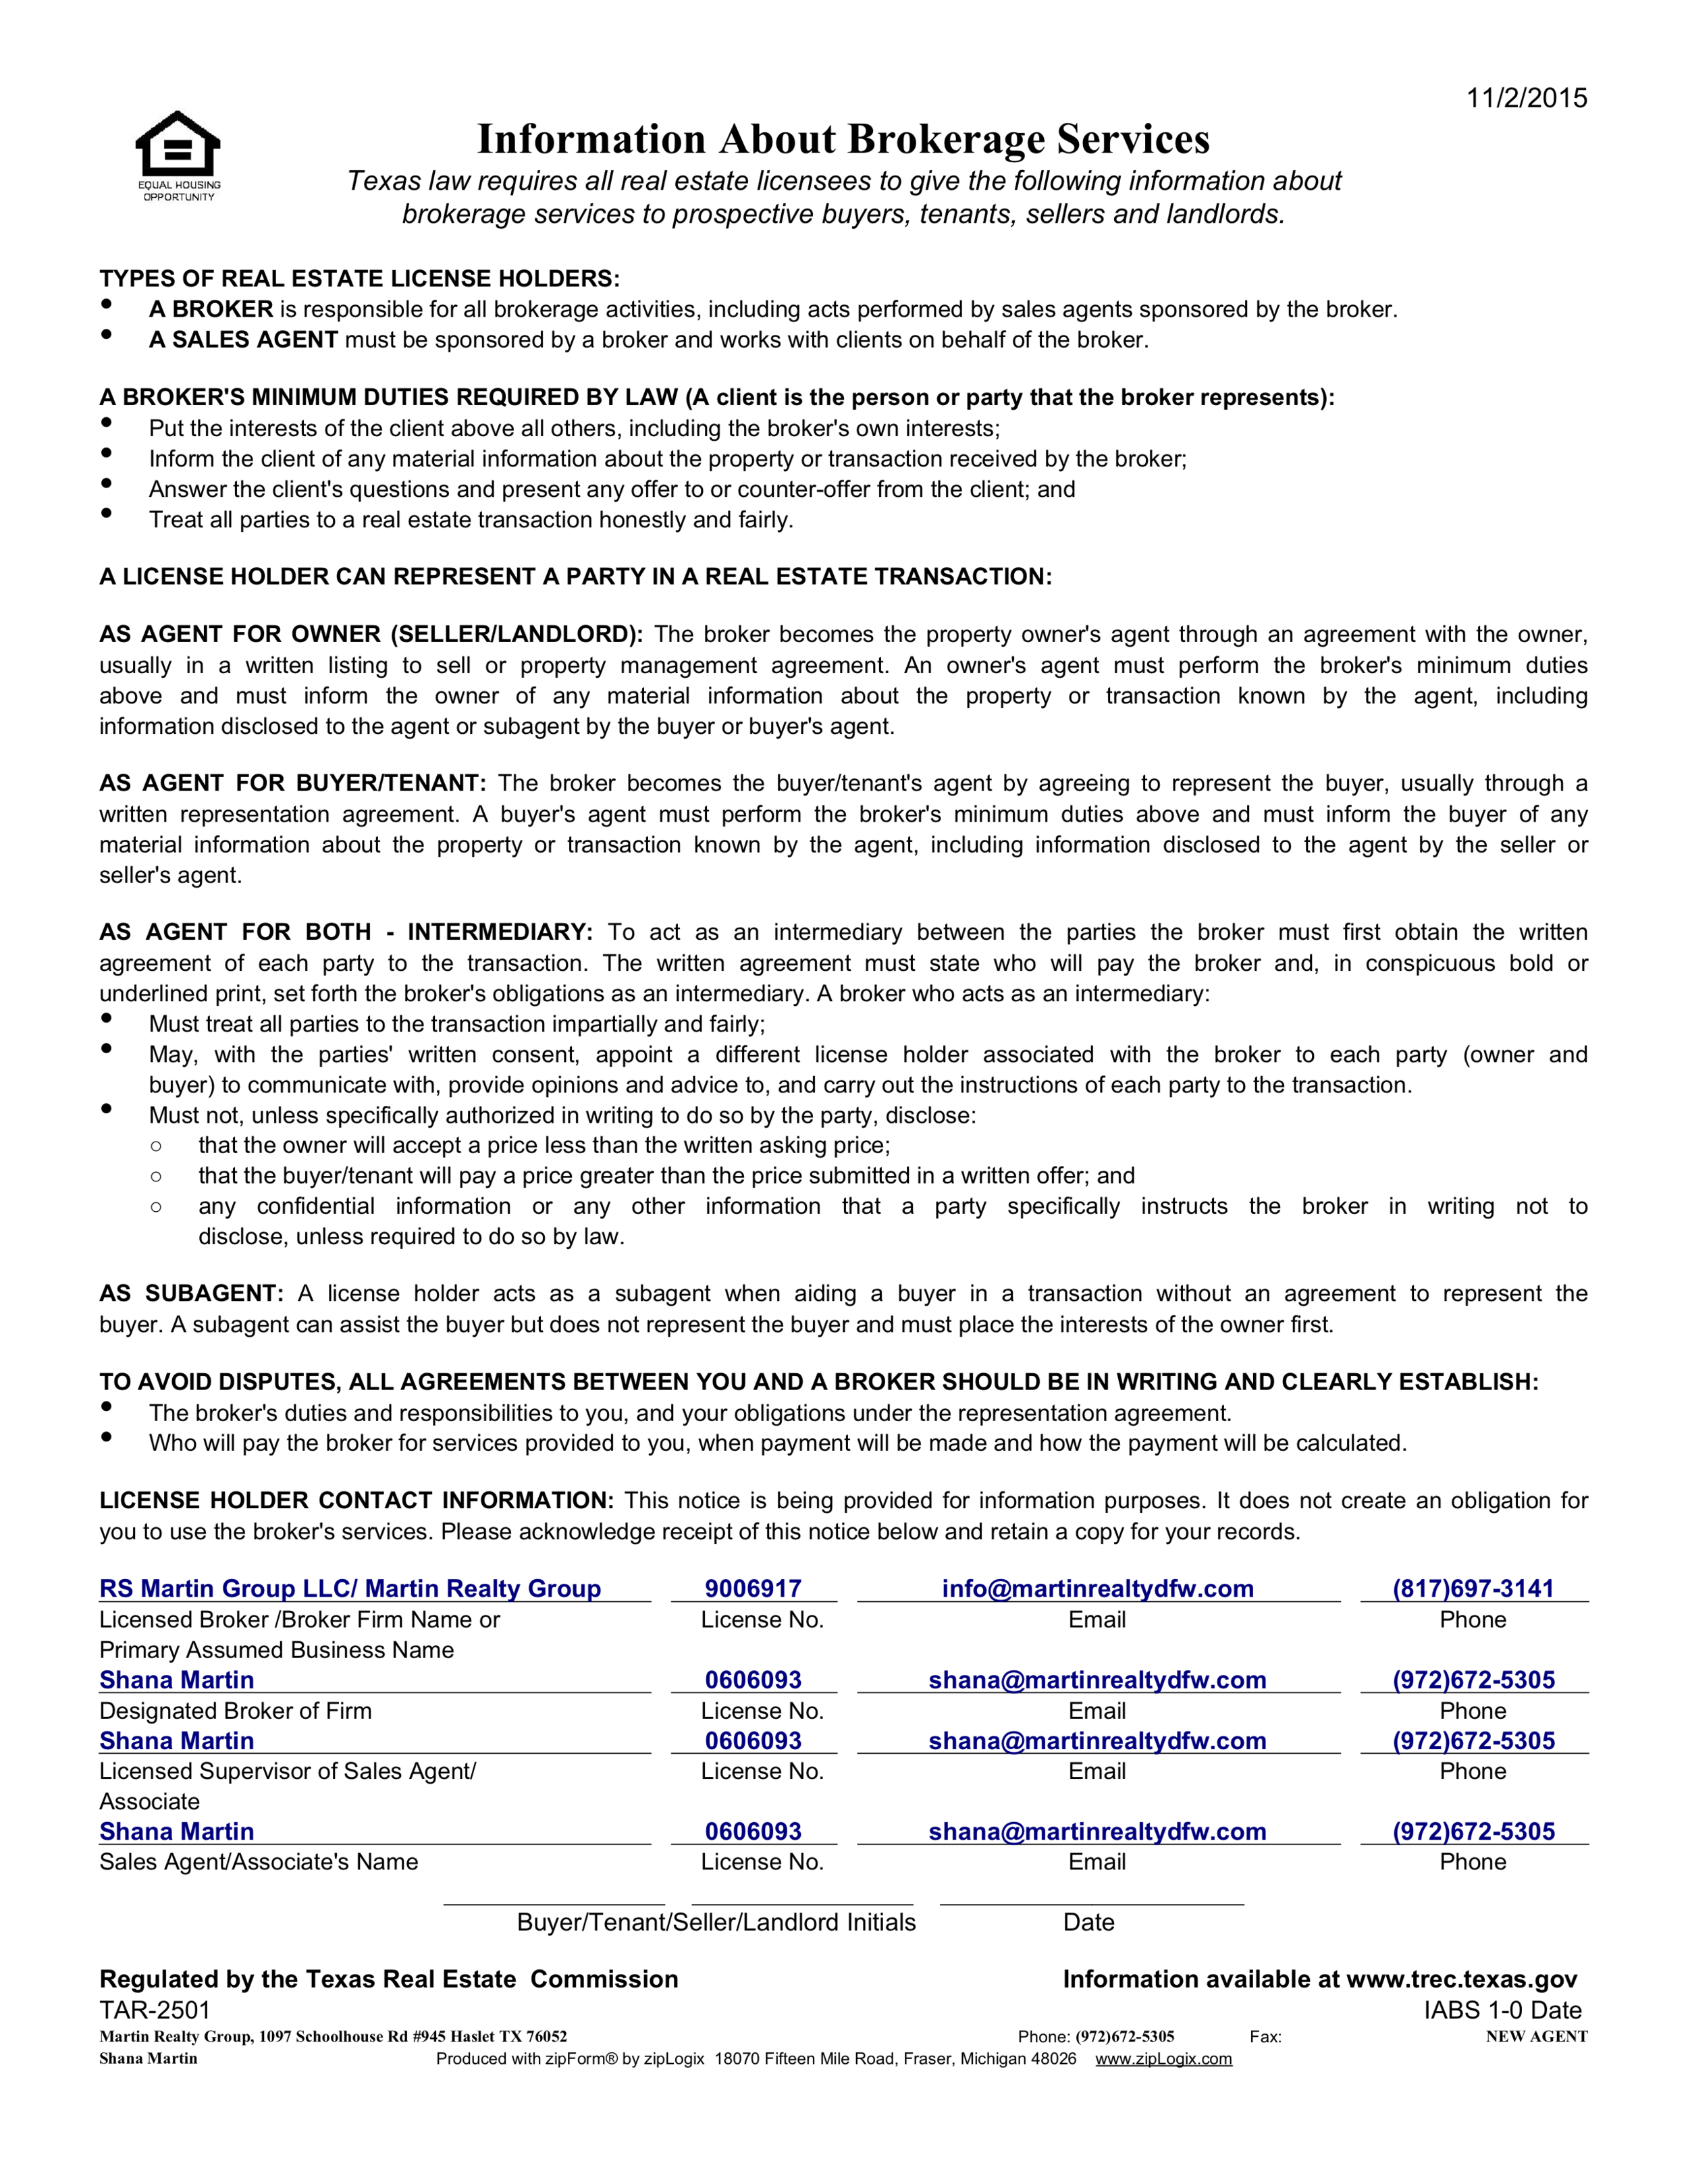 Information_About_Brokerage_Services_BuyerTenant_-_11215_ts95531.png